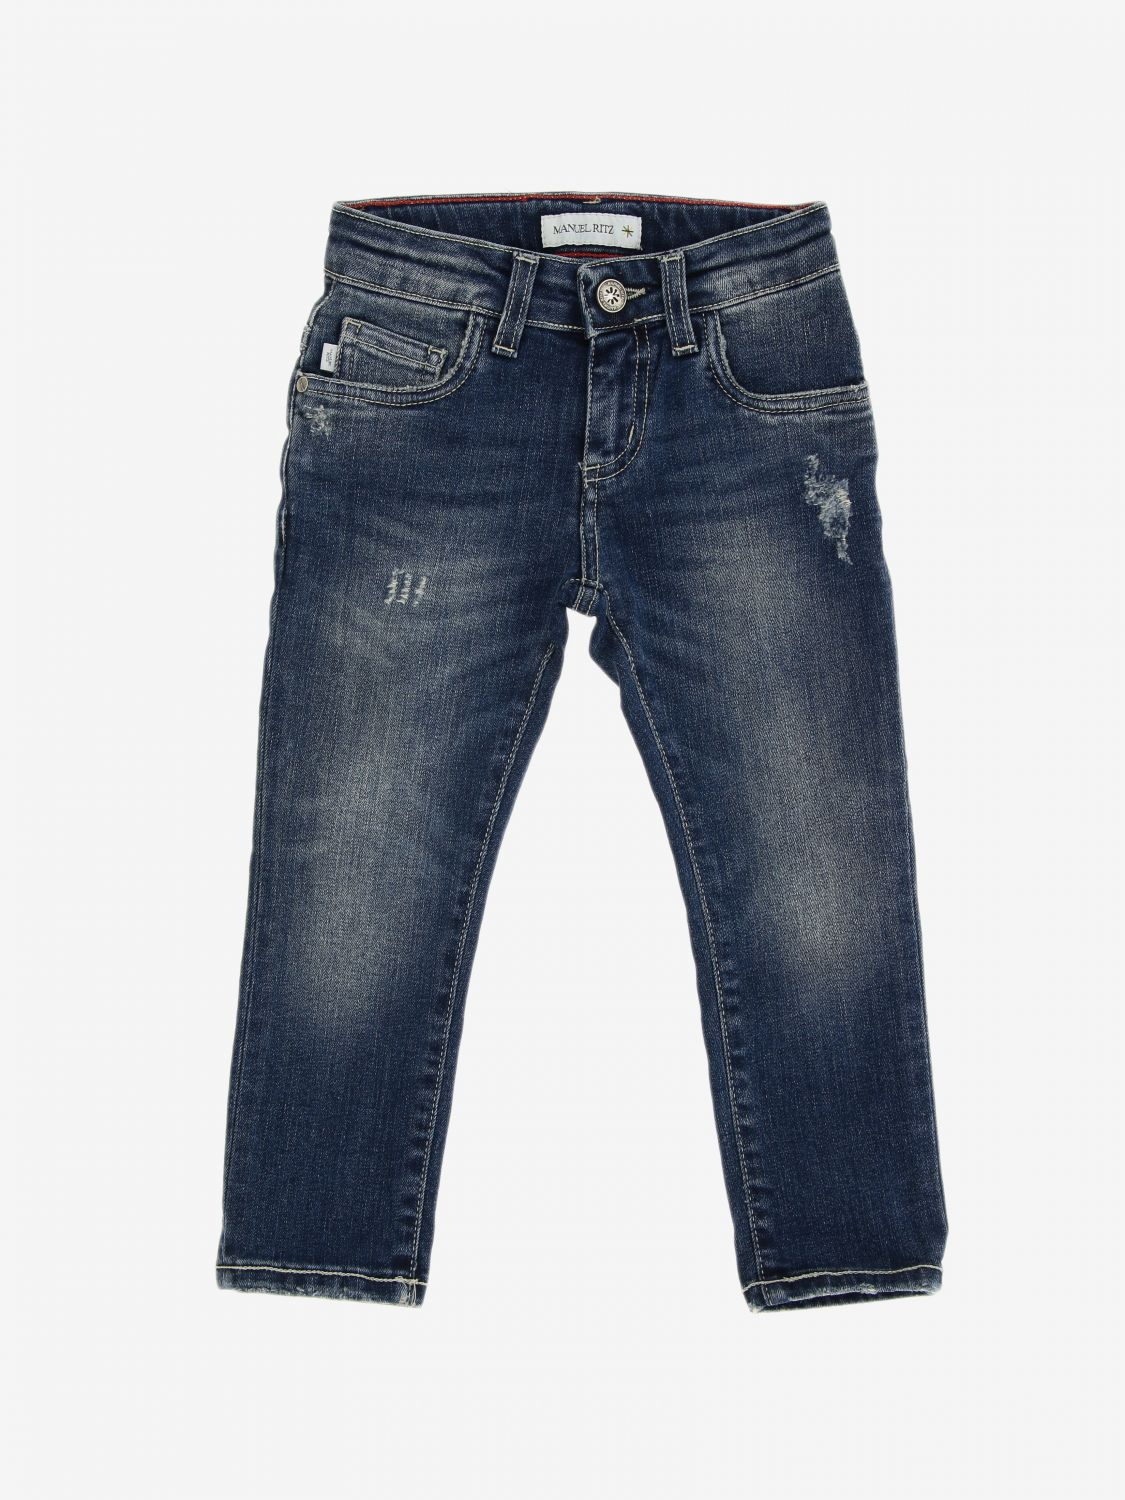 Jeans kinder Manuel Ritz denim 1